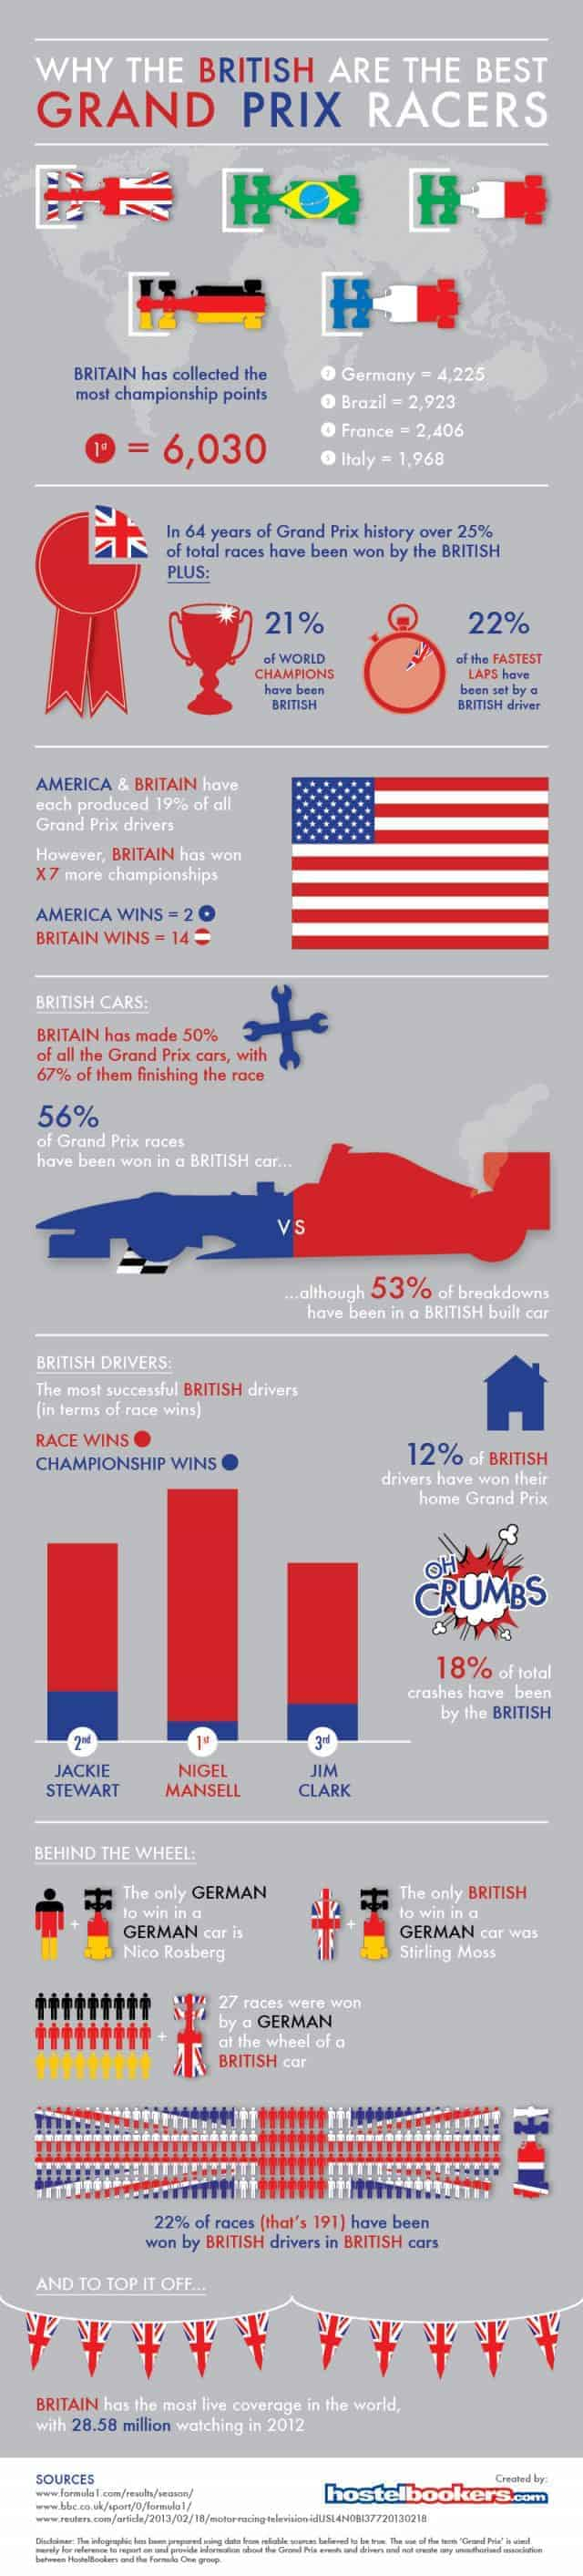 Why British Are The Best Grand Prix Racers